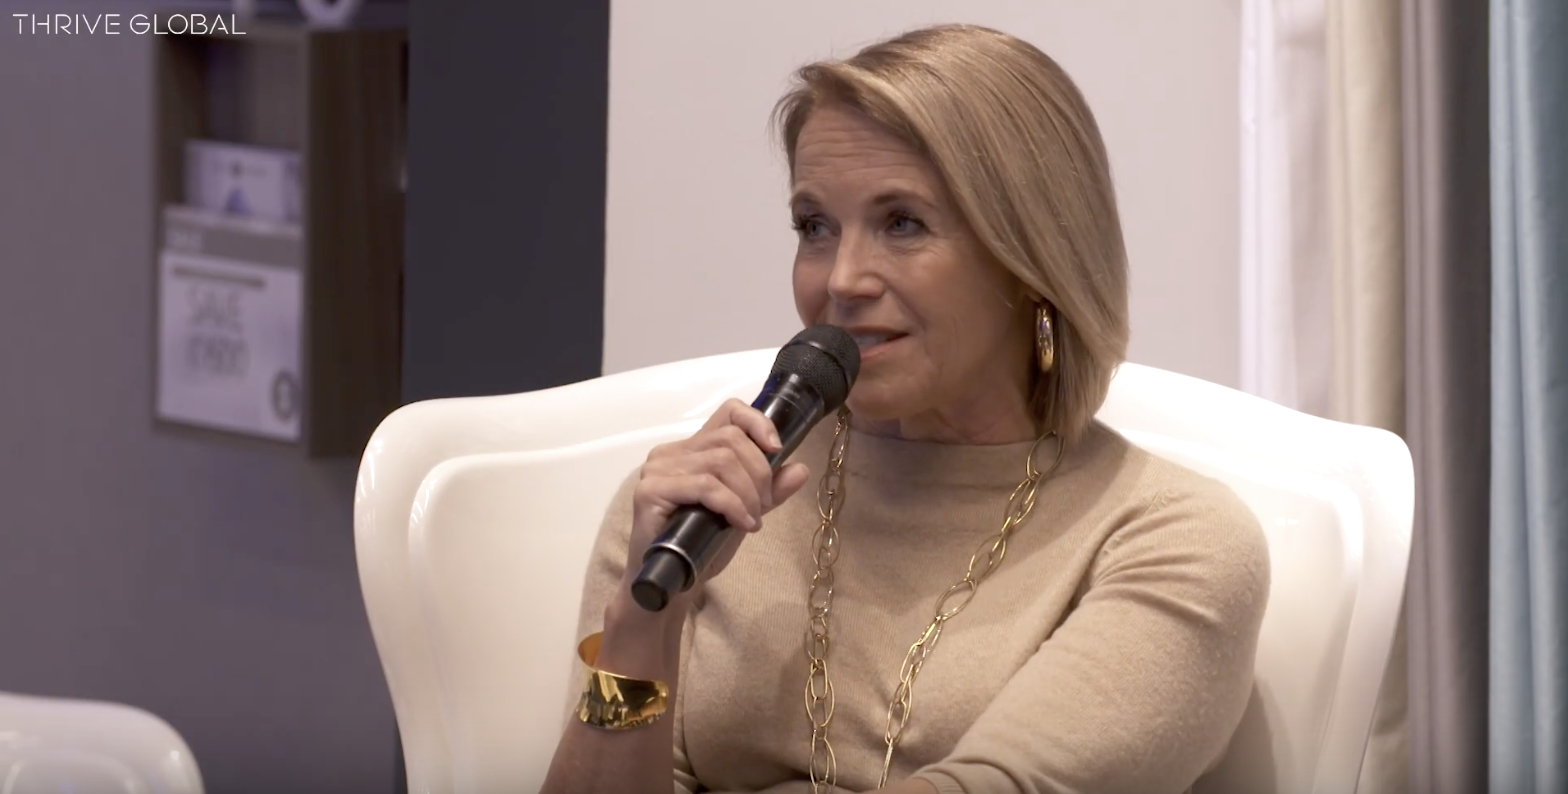 Katie Couric Struggles With Self-Image, Too. Here's How She Overcomes It.